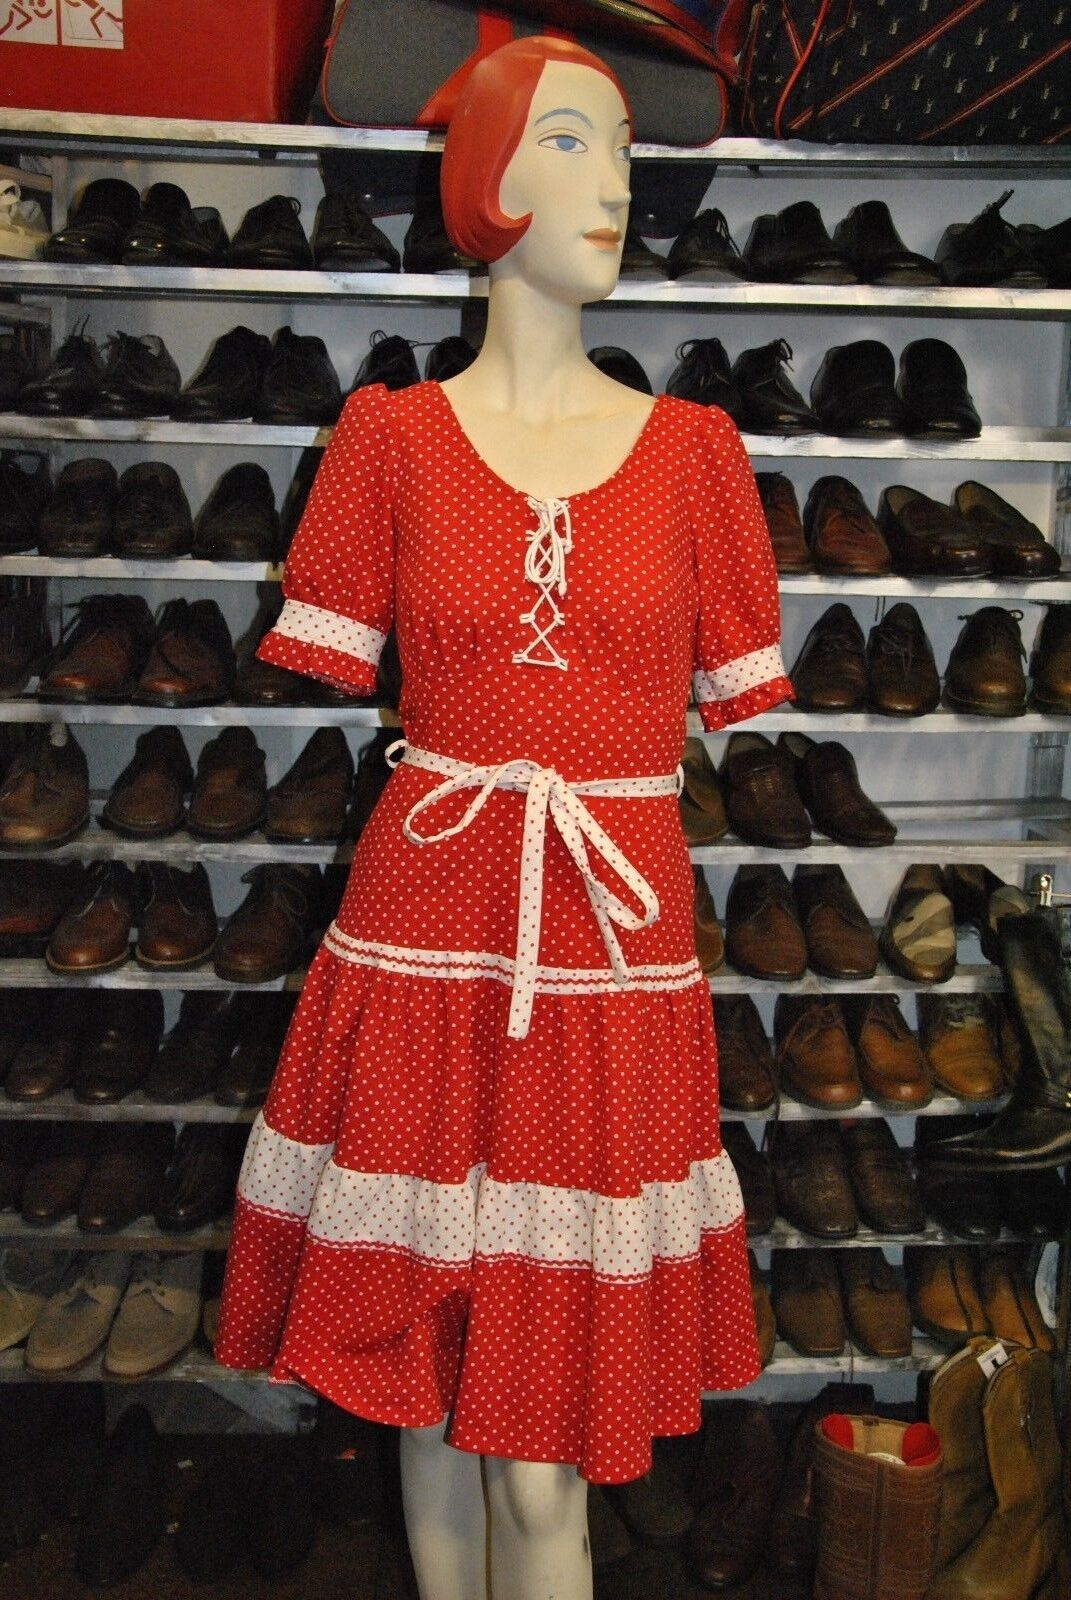 Diolen Kleid 36 rot polka dot gepunktet S TRUE VINTAGE 70s rot dress